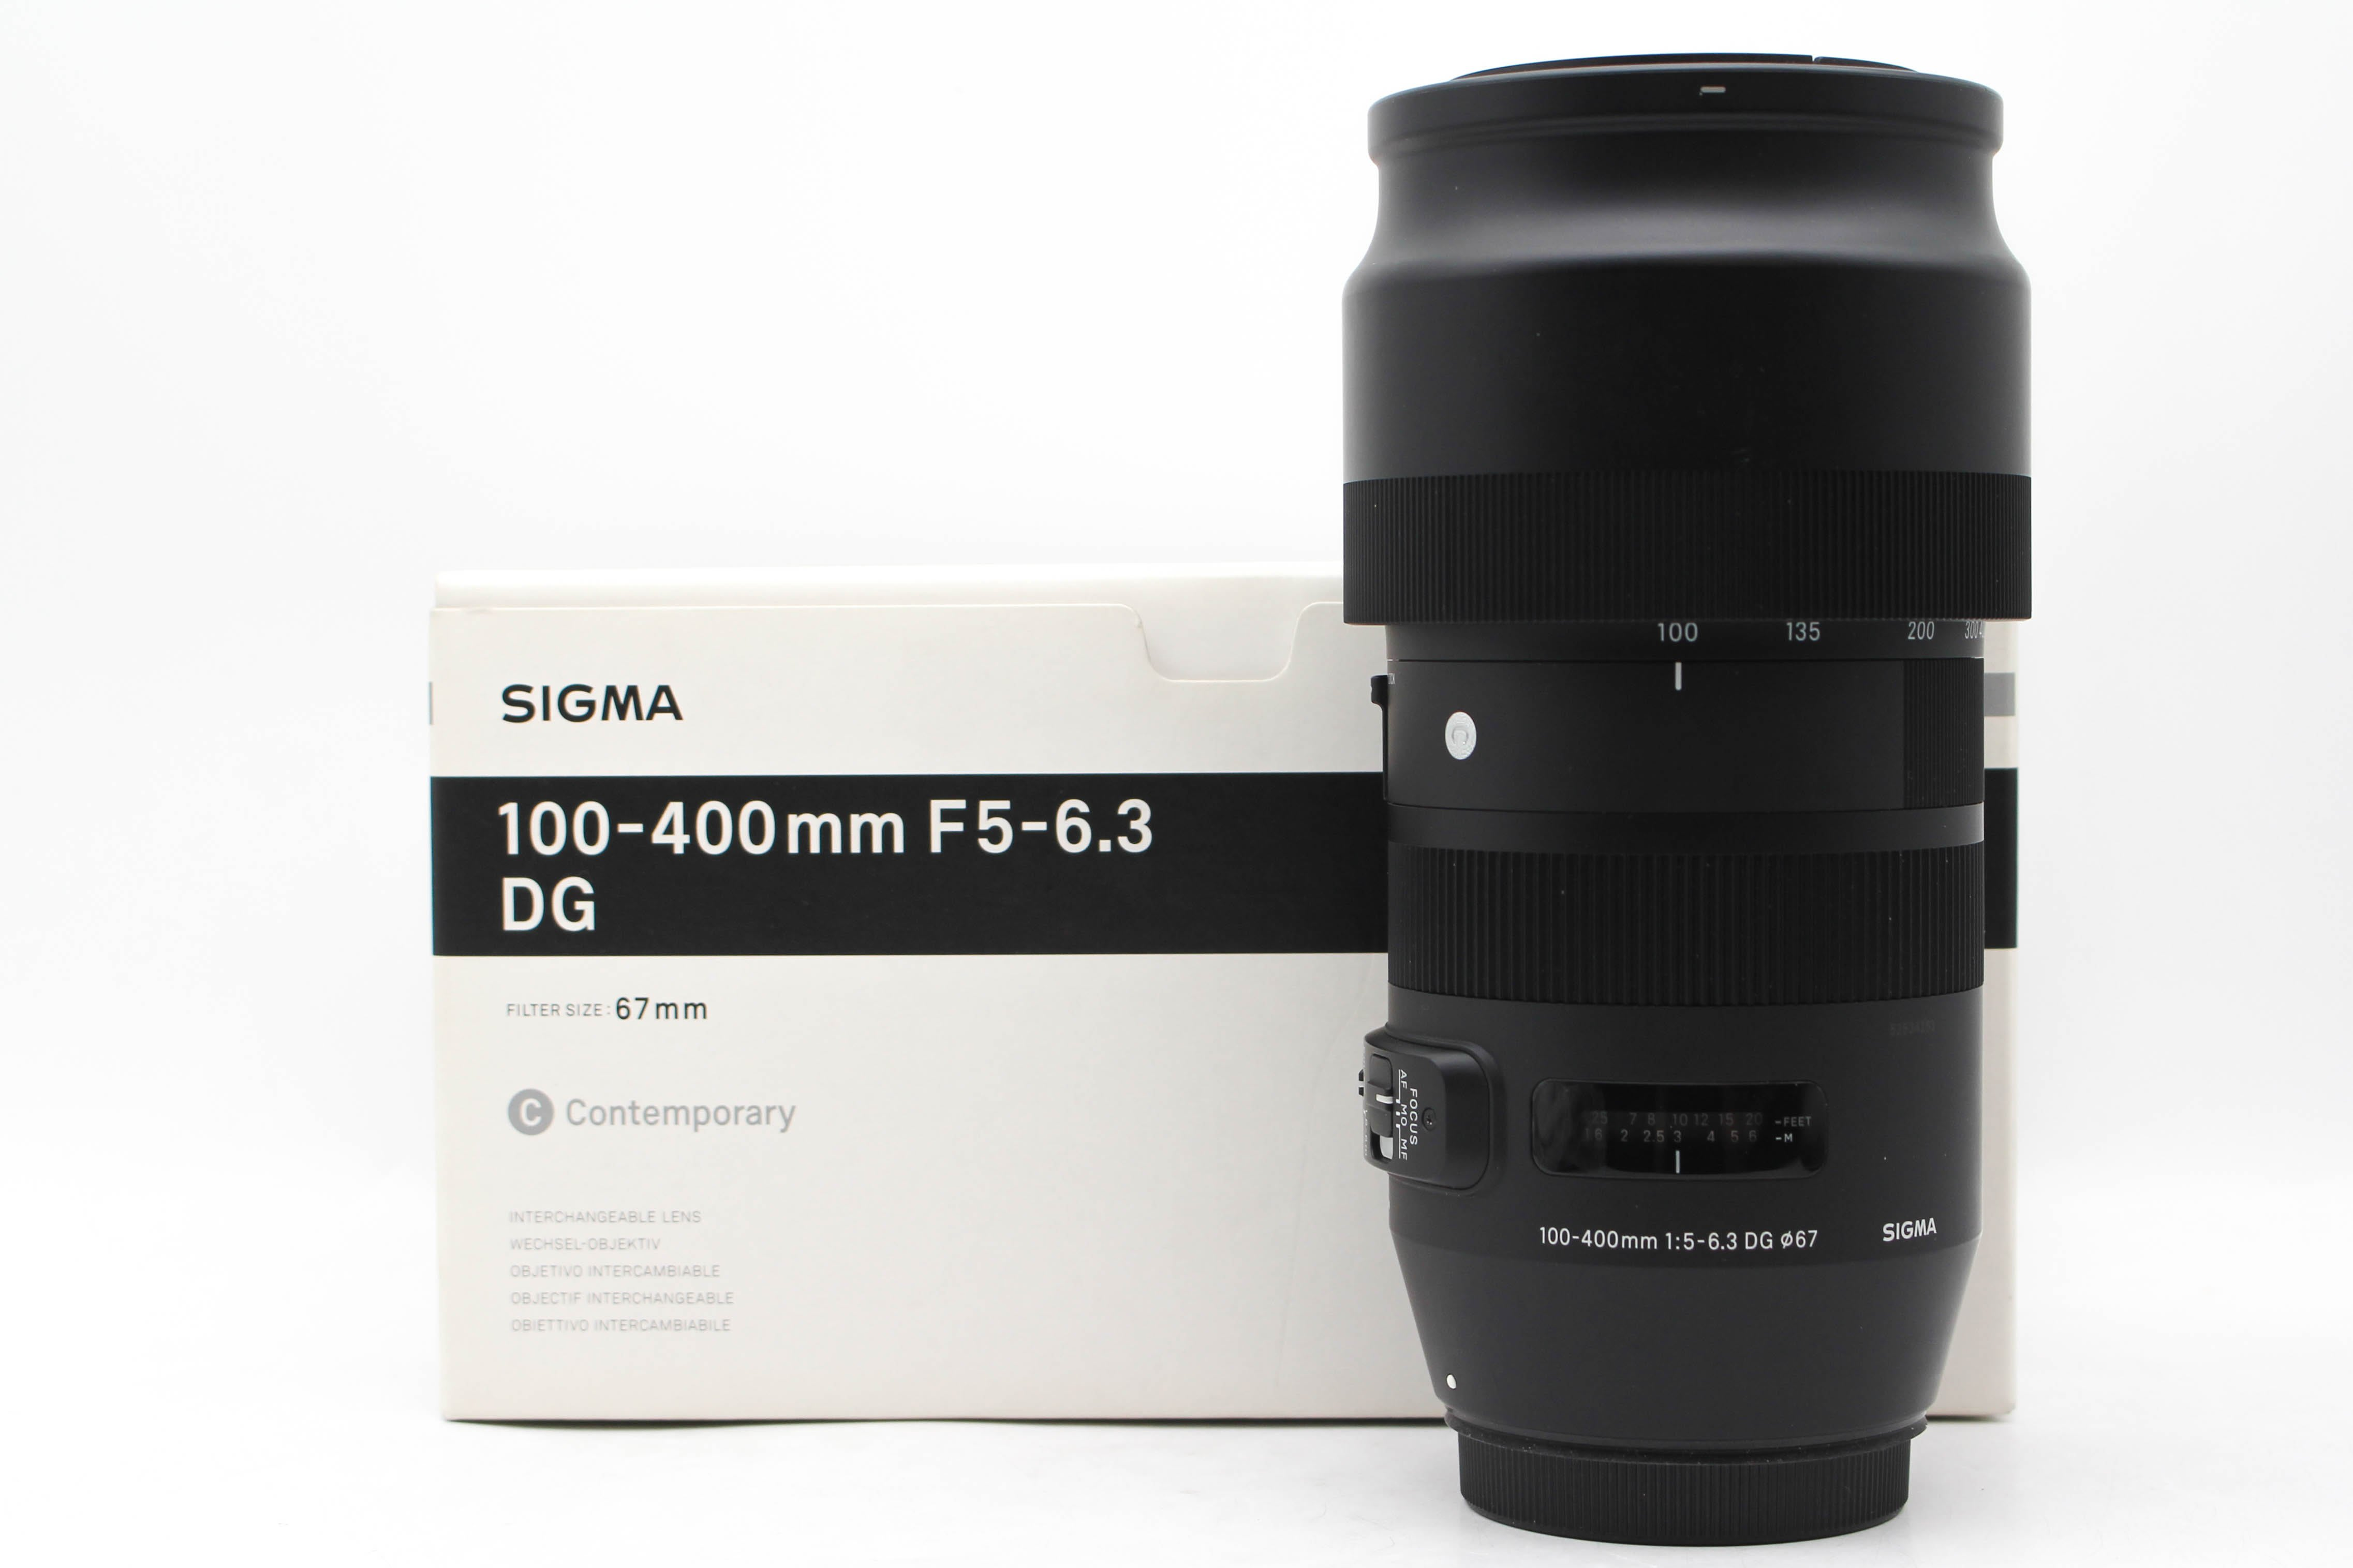 【高雄青蘋果3C】Sigma 100-400mm f5-6.3 DG OS HSM for Canon #47874